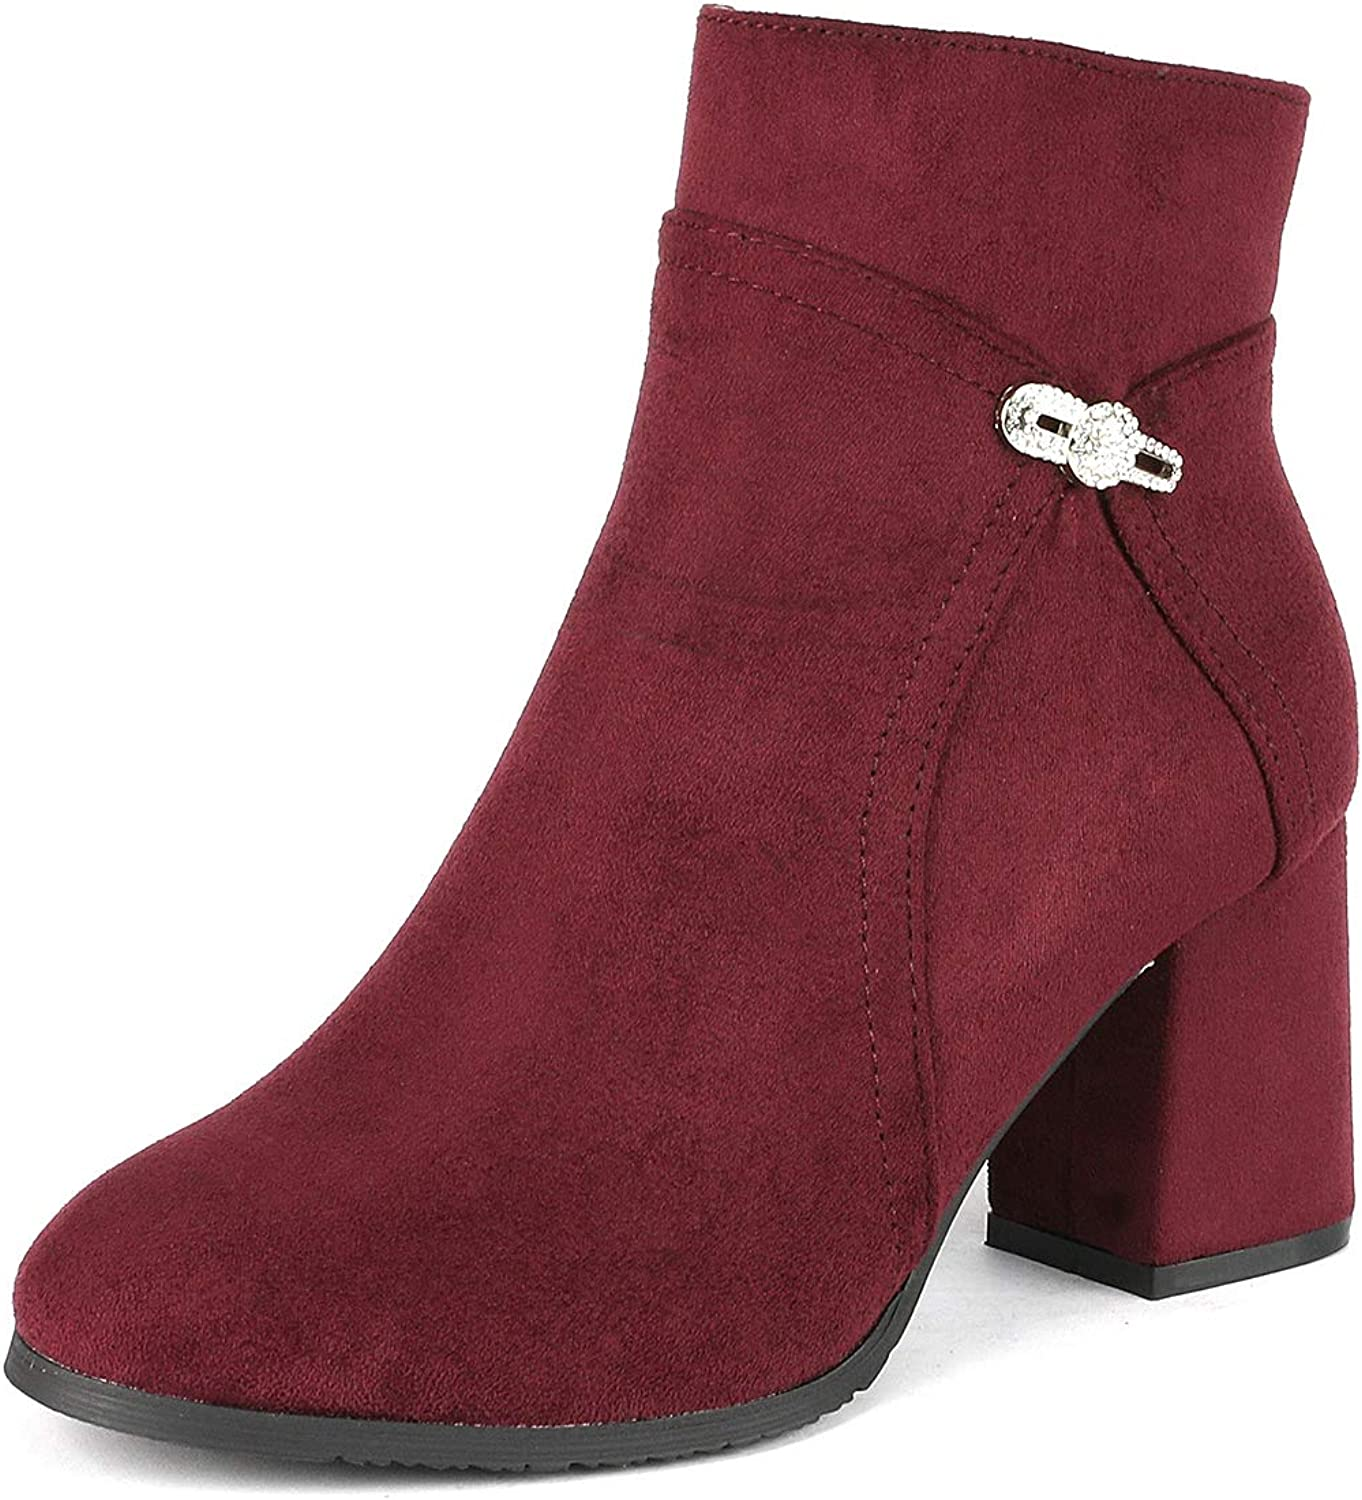 DREAM PAIRS Women's Mimi High Heel Ankle Boots